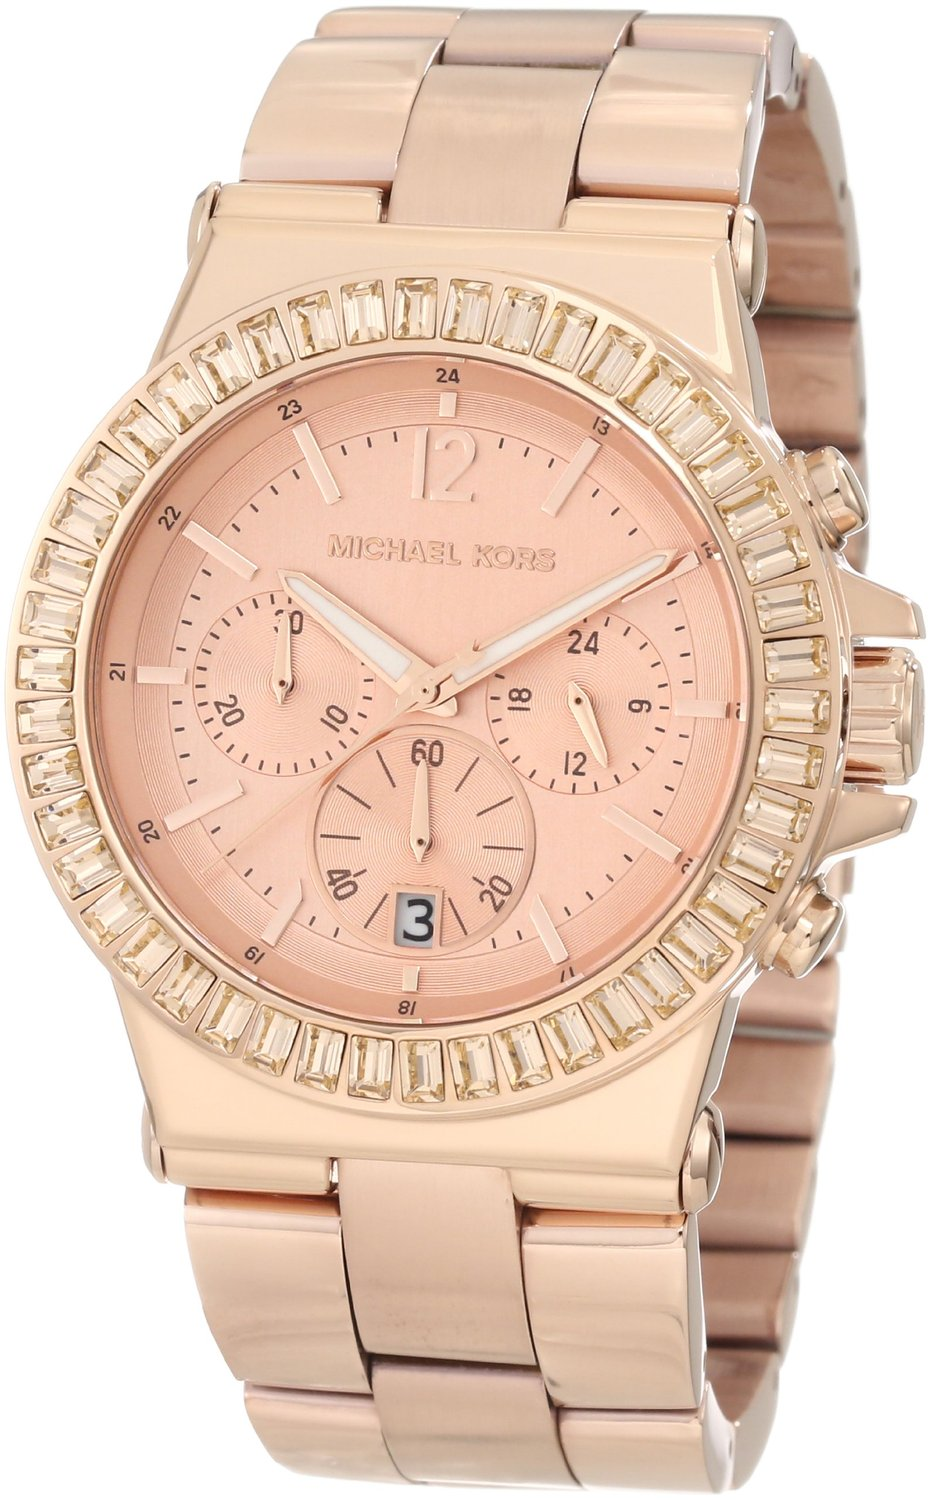 Amazon.com: Michael Kors Women's MK5412 Dylan Rose-Tone Watch: Michael Kors: Watches